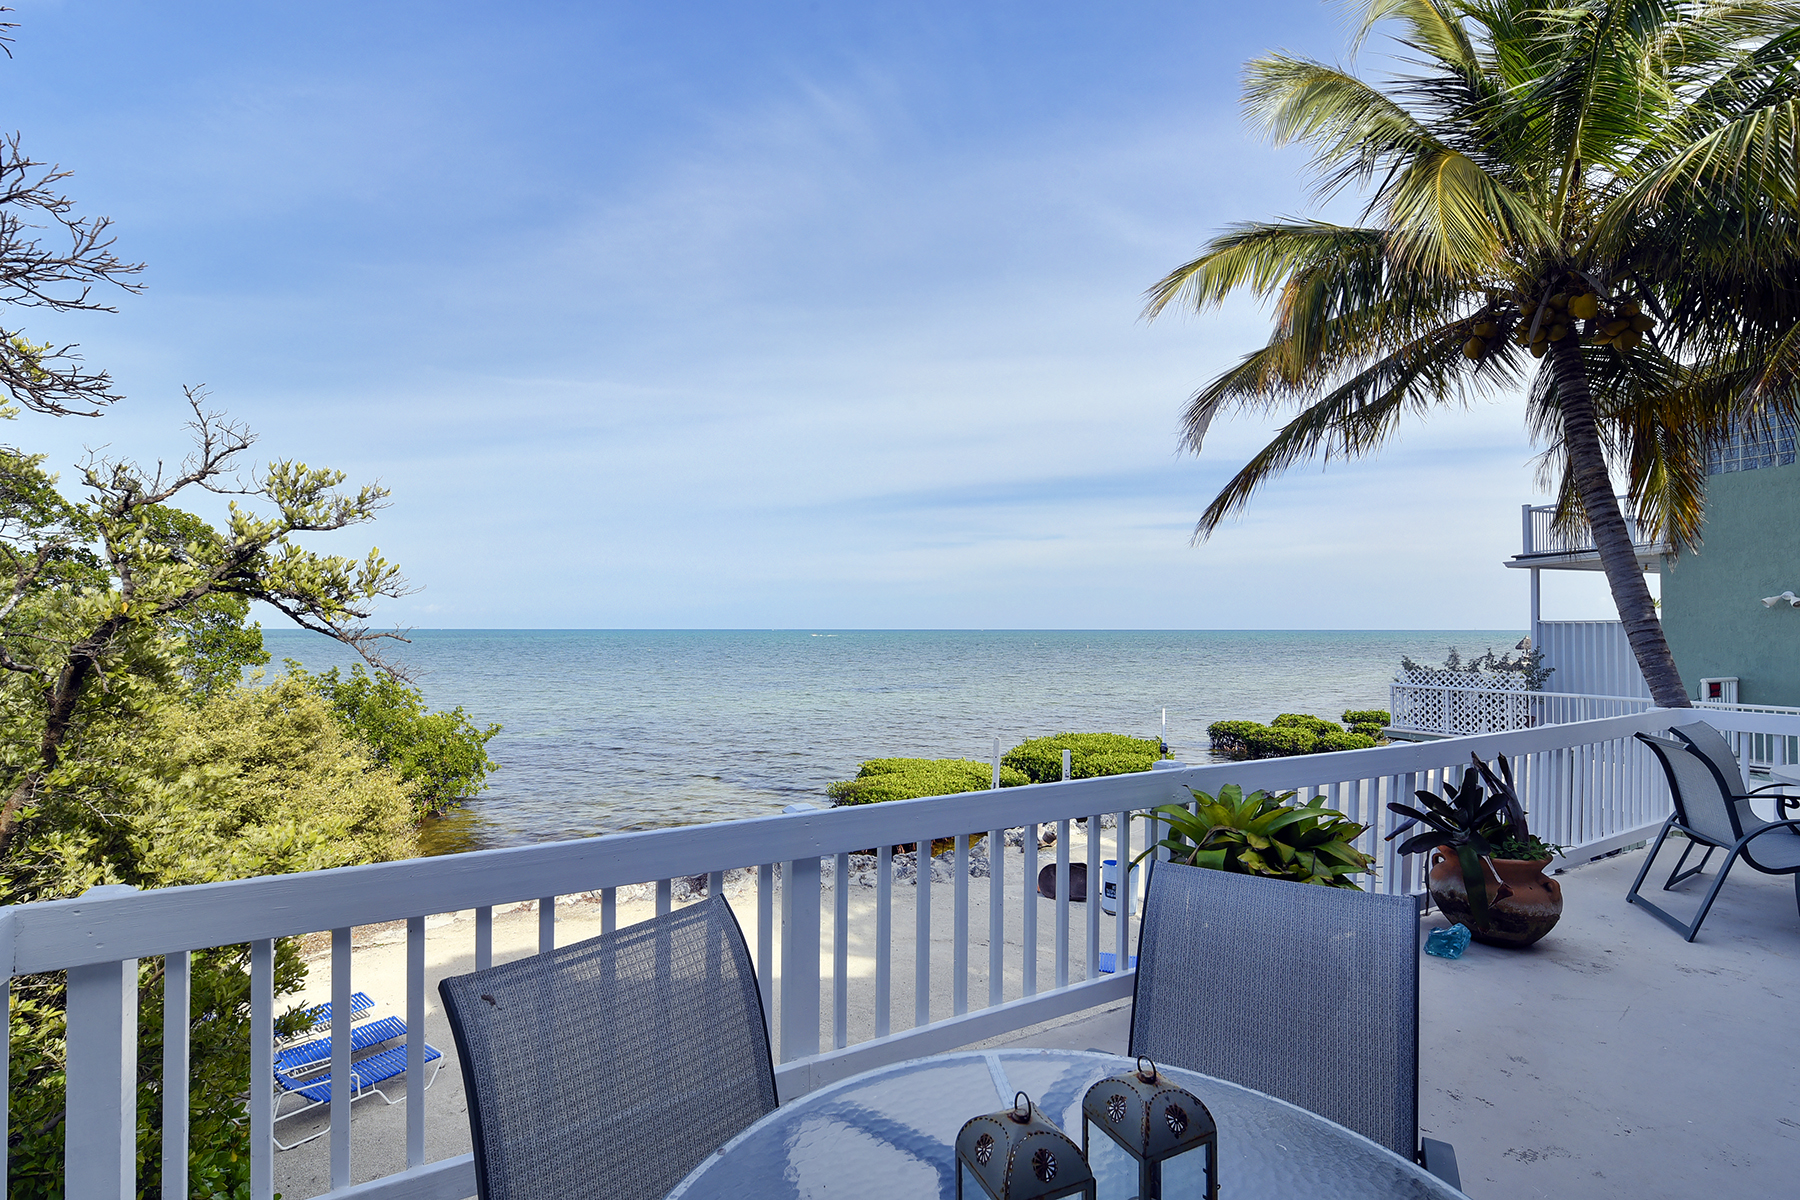 Single Family Home for Sale at Sweeping Ocean Views 316 North Drive Plantation Key, Florida 33036 United States